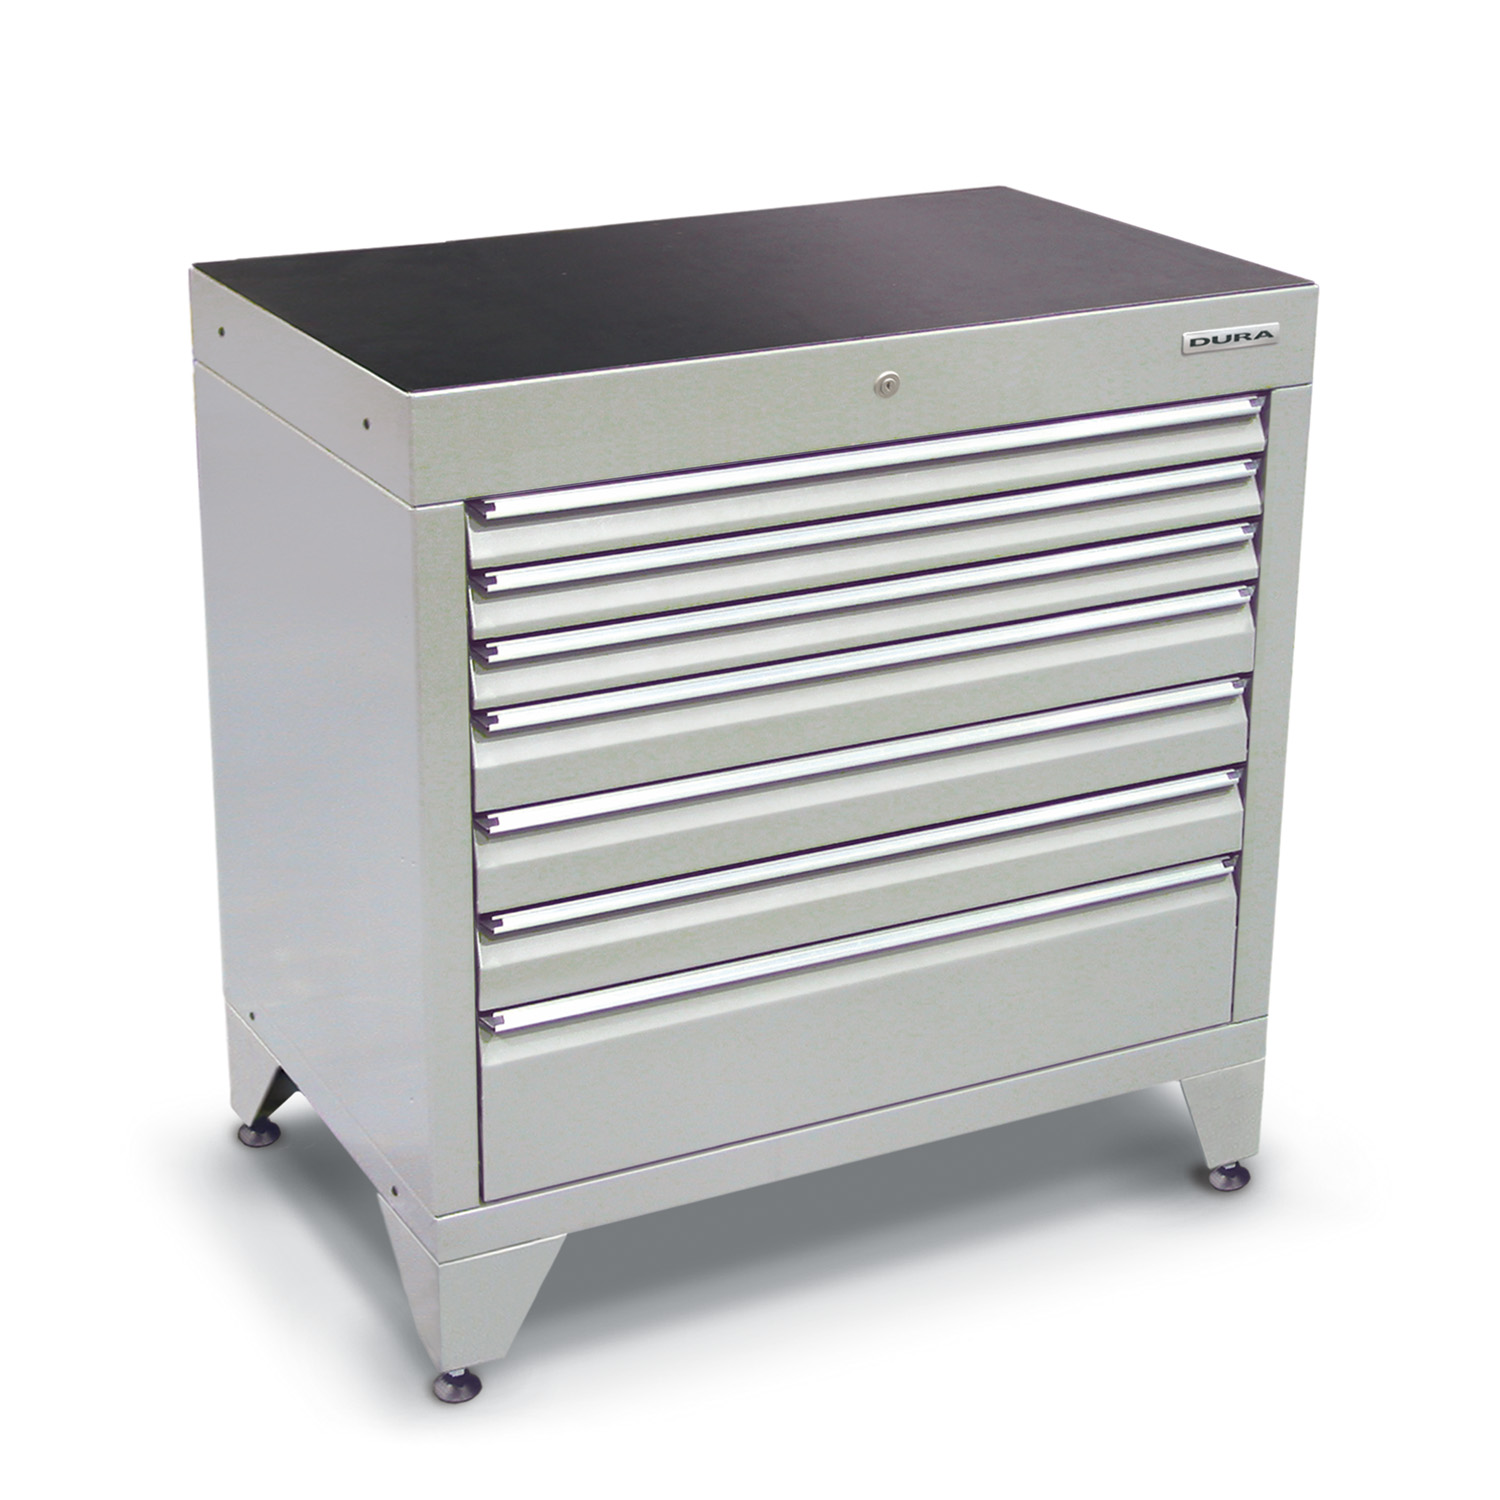 900 series cabinet with 7 drawers (3 slim, 3 medium, 1 large) and feet